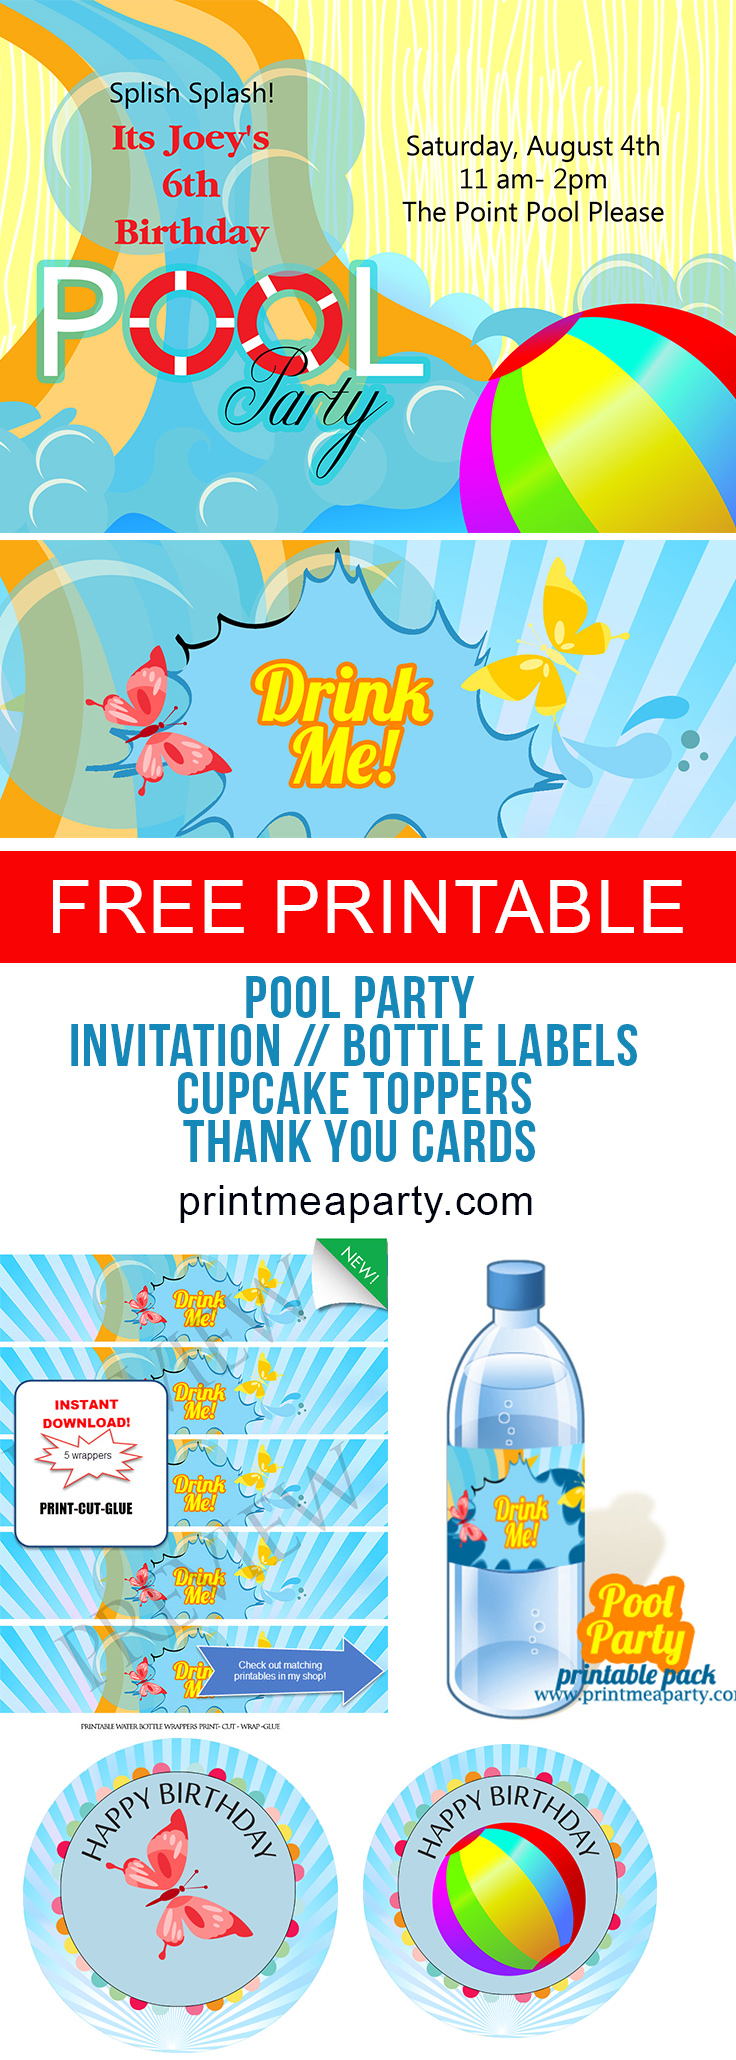 photo relating to Pool Party Printable called Cost-free Pool Social gathering invites - Print Me a Get together